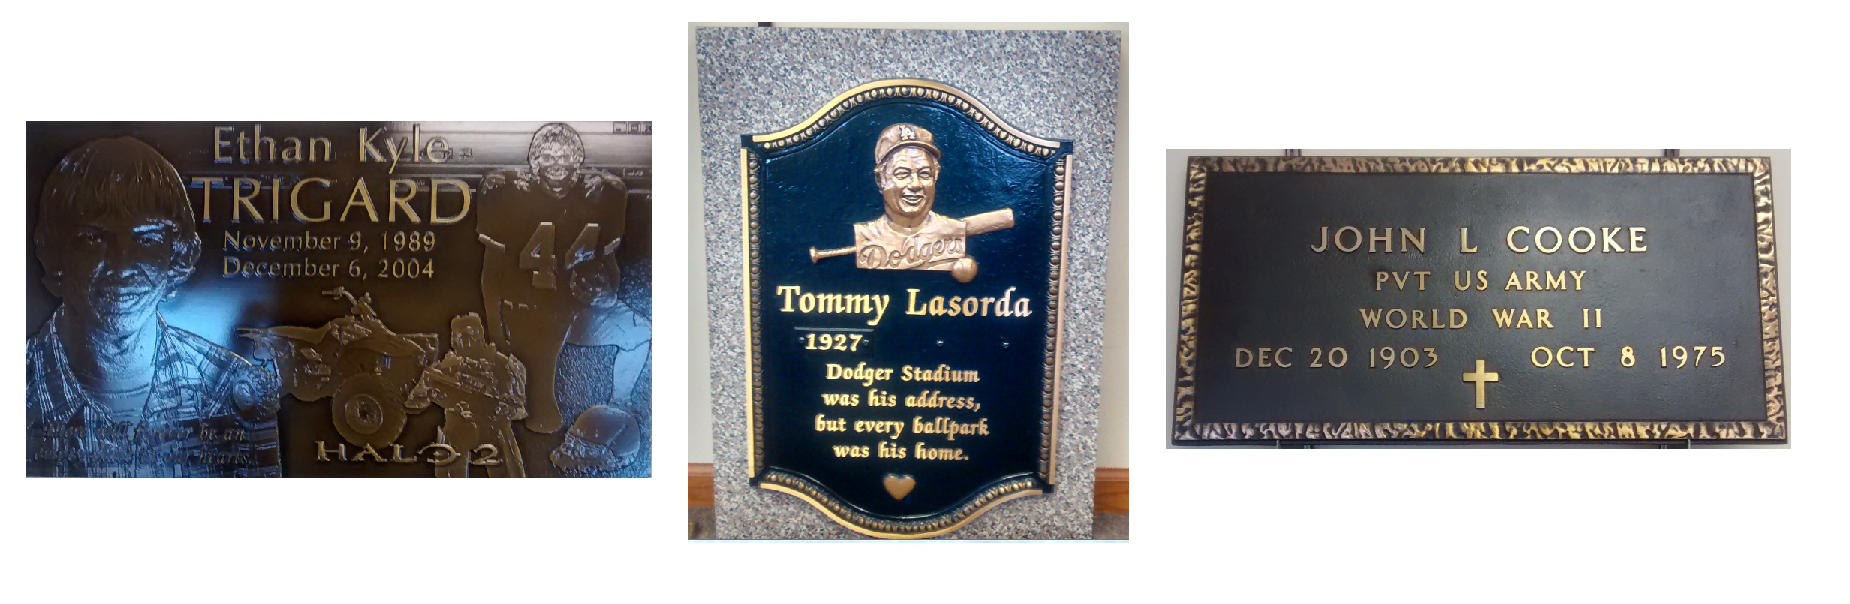 combined plaques image